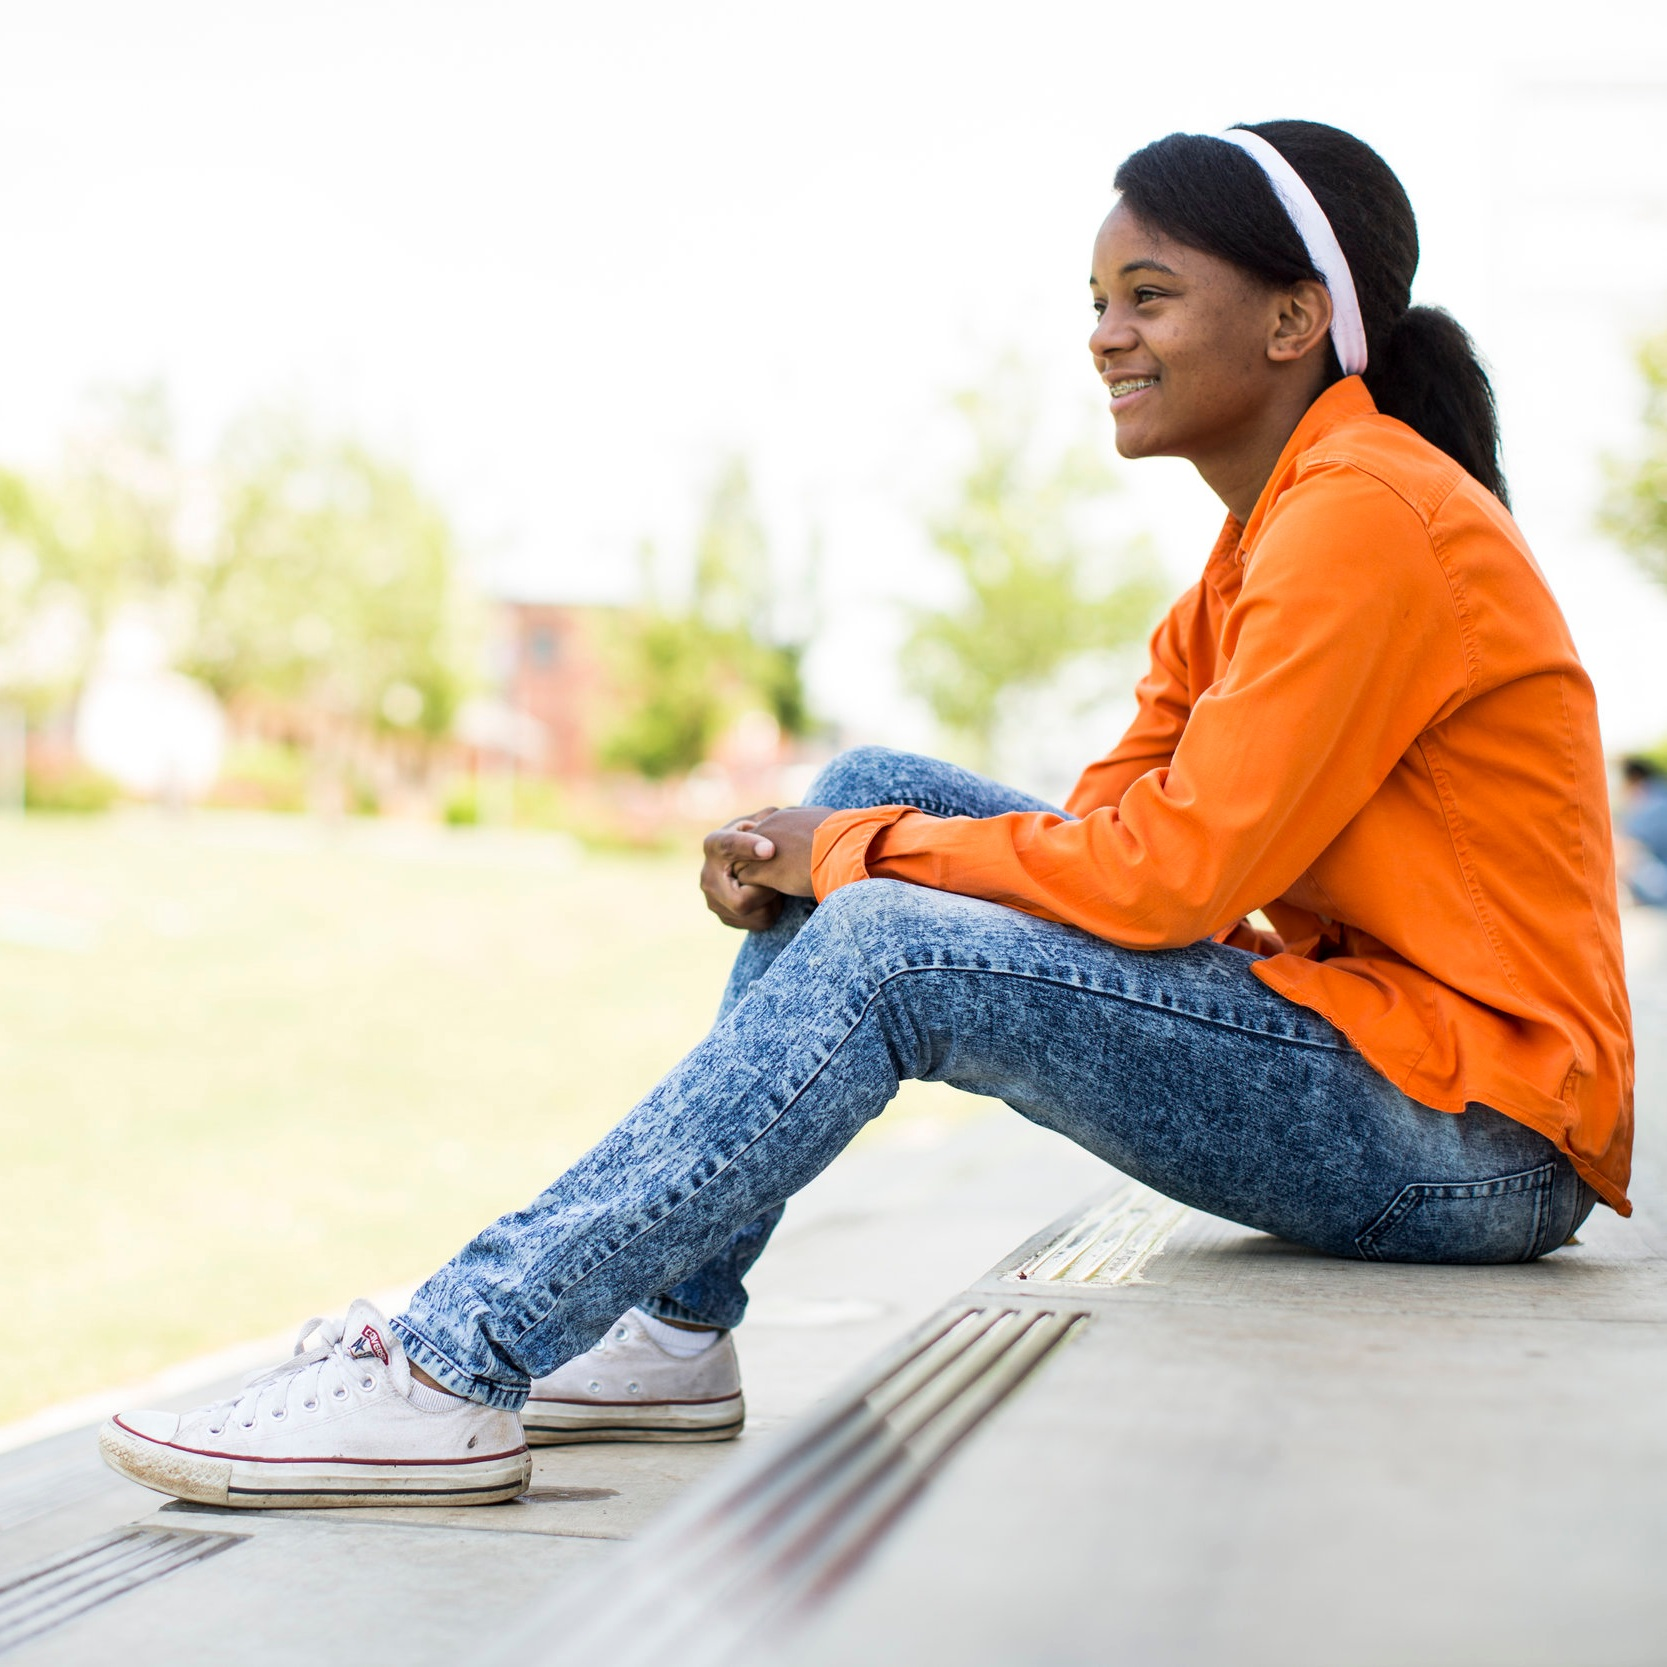 Programs for Schools - We are here to help diffuse a problem and help youth and their families connect with resources. We promote wellness, prevent suicide and connect youth and their loved ones with community-based care.